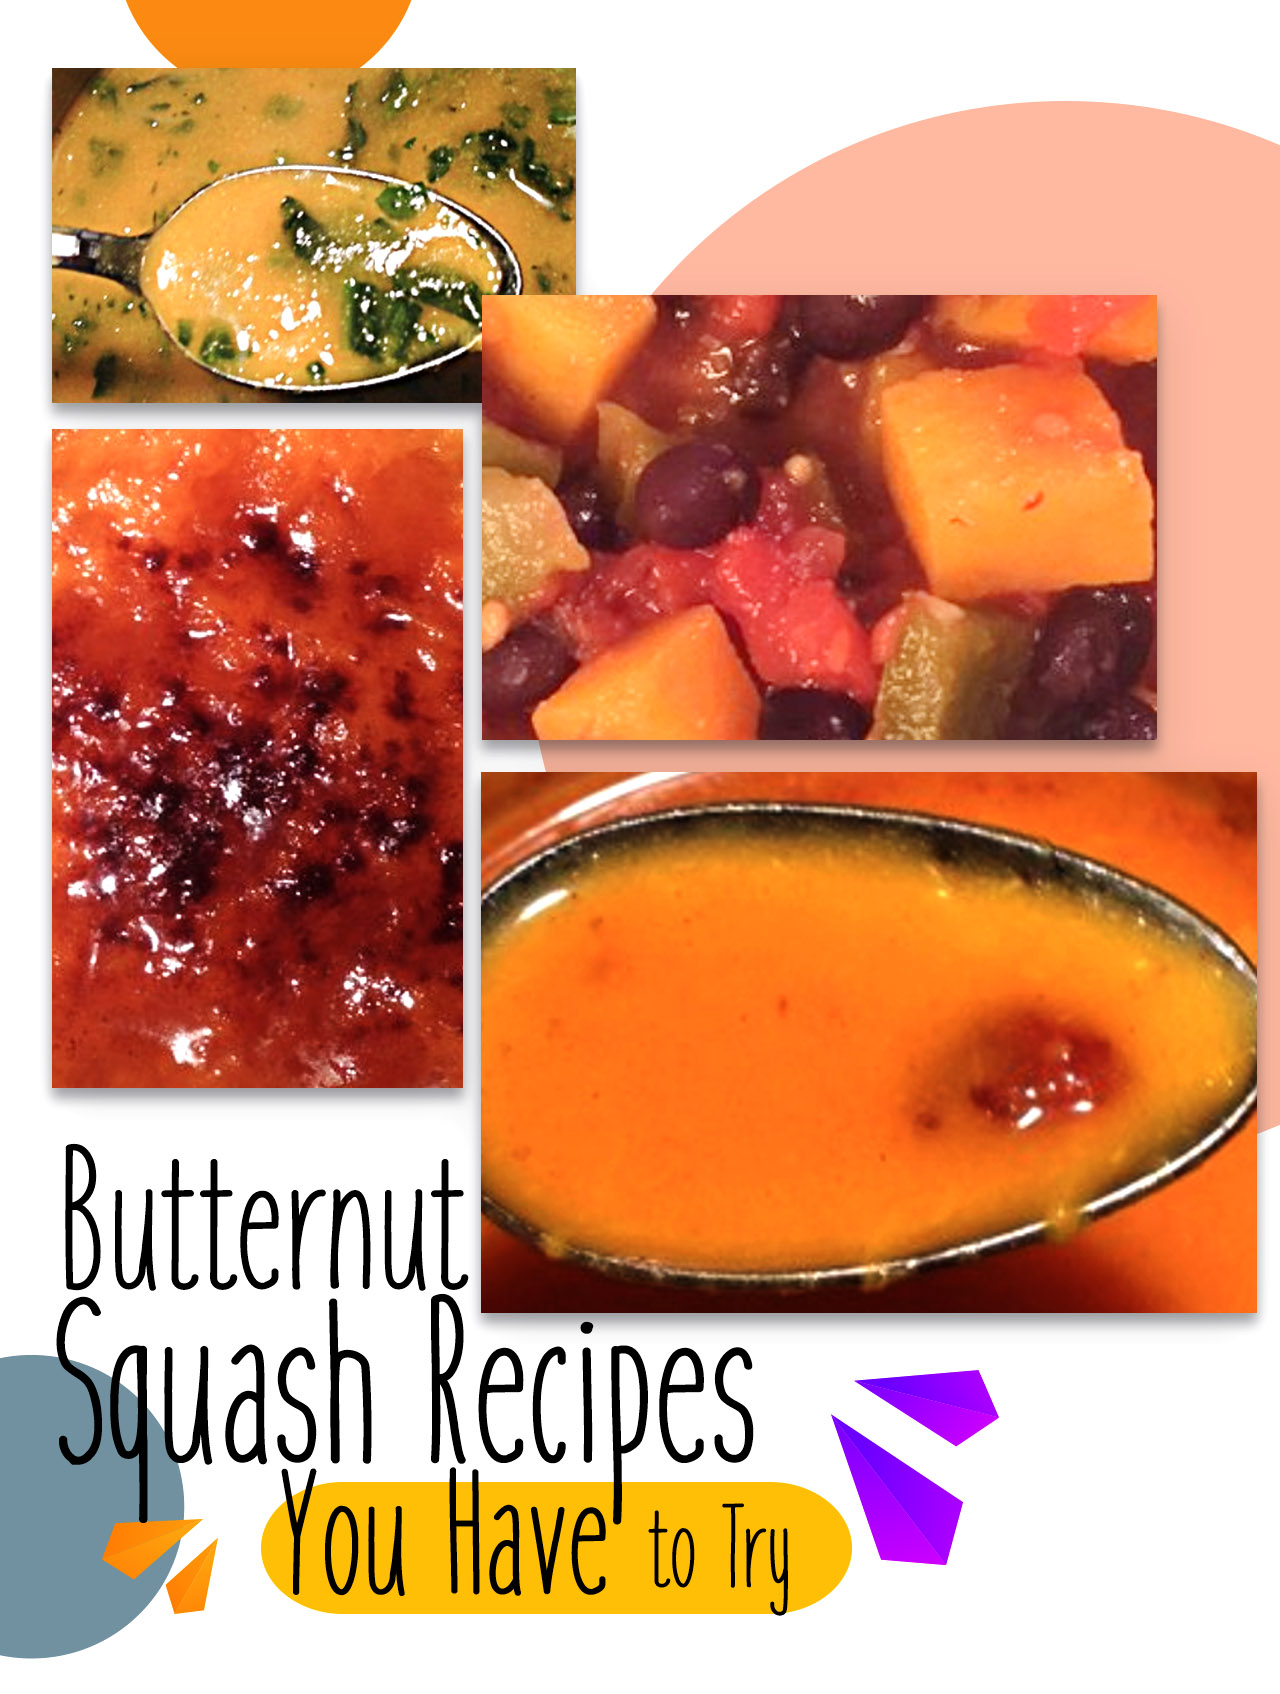 4 dishes featuring butternut squash